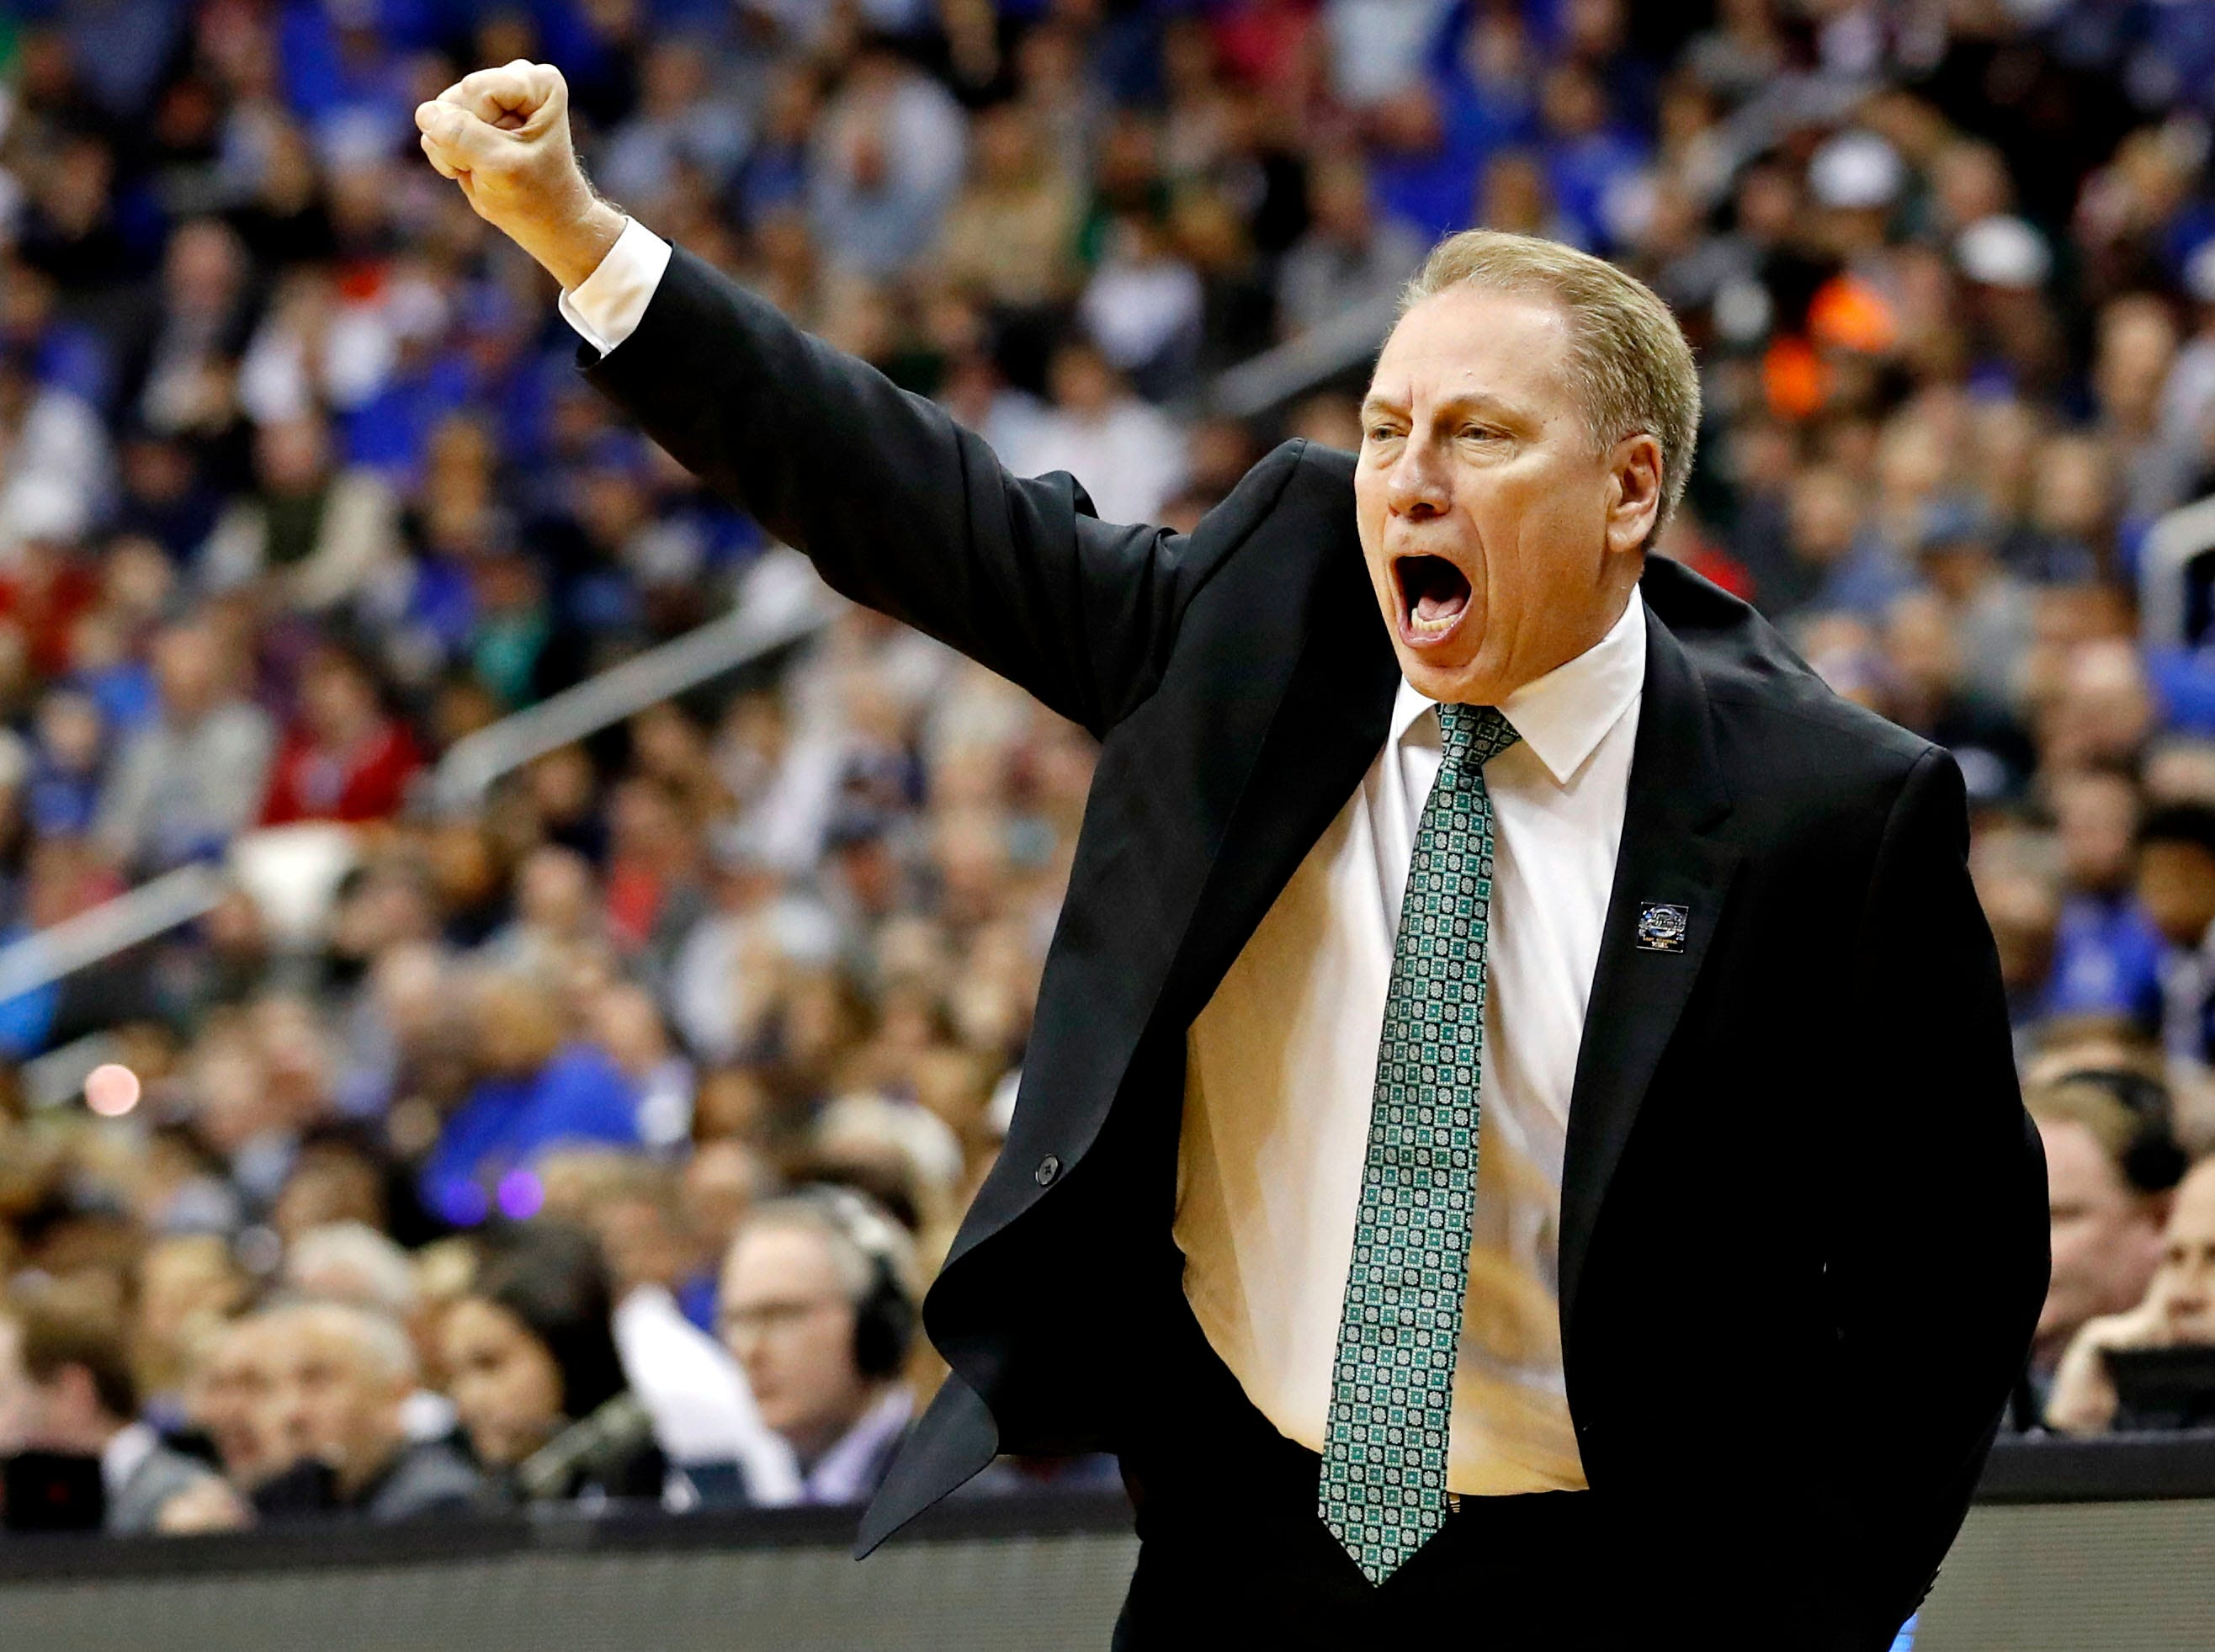 Mar 31, 2019; Washington, DC, USA; Michigan State Spartans head coach Tom Izzo during the first half against the Duke Blue Devils in the championship game of the east regional of the 2019 NCAA Tournament at Capital One Arena. Mandatory Credit: Geoff Burke-USA TODAY Sports